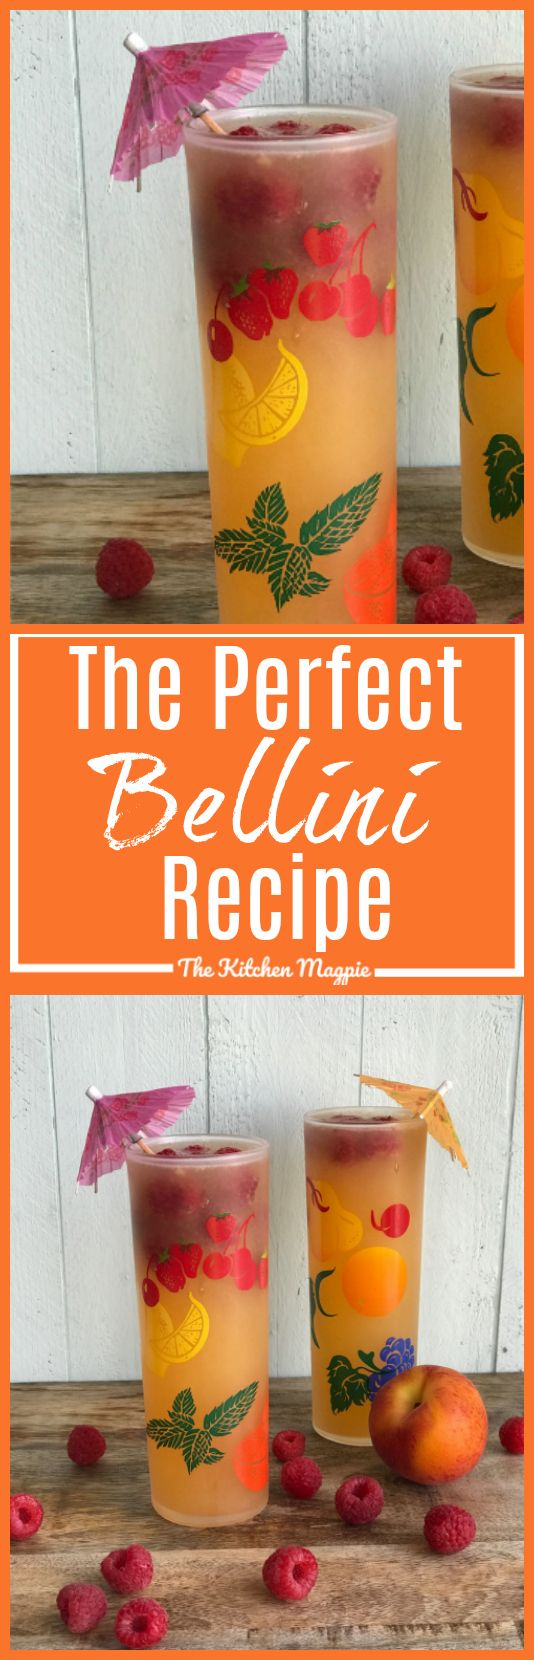 Looking for the Perfect Bellini Recipe? Try this amazing one from @kitchenmagpie!